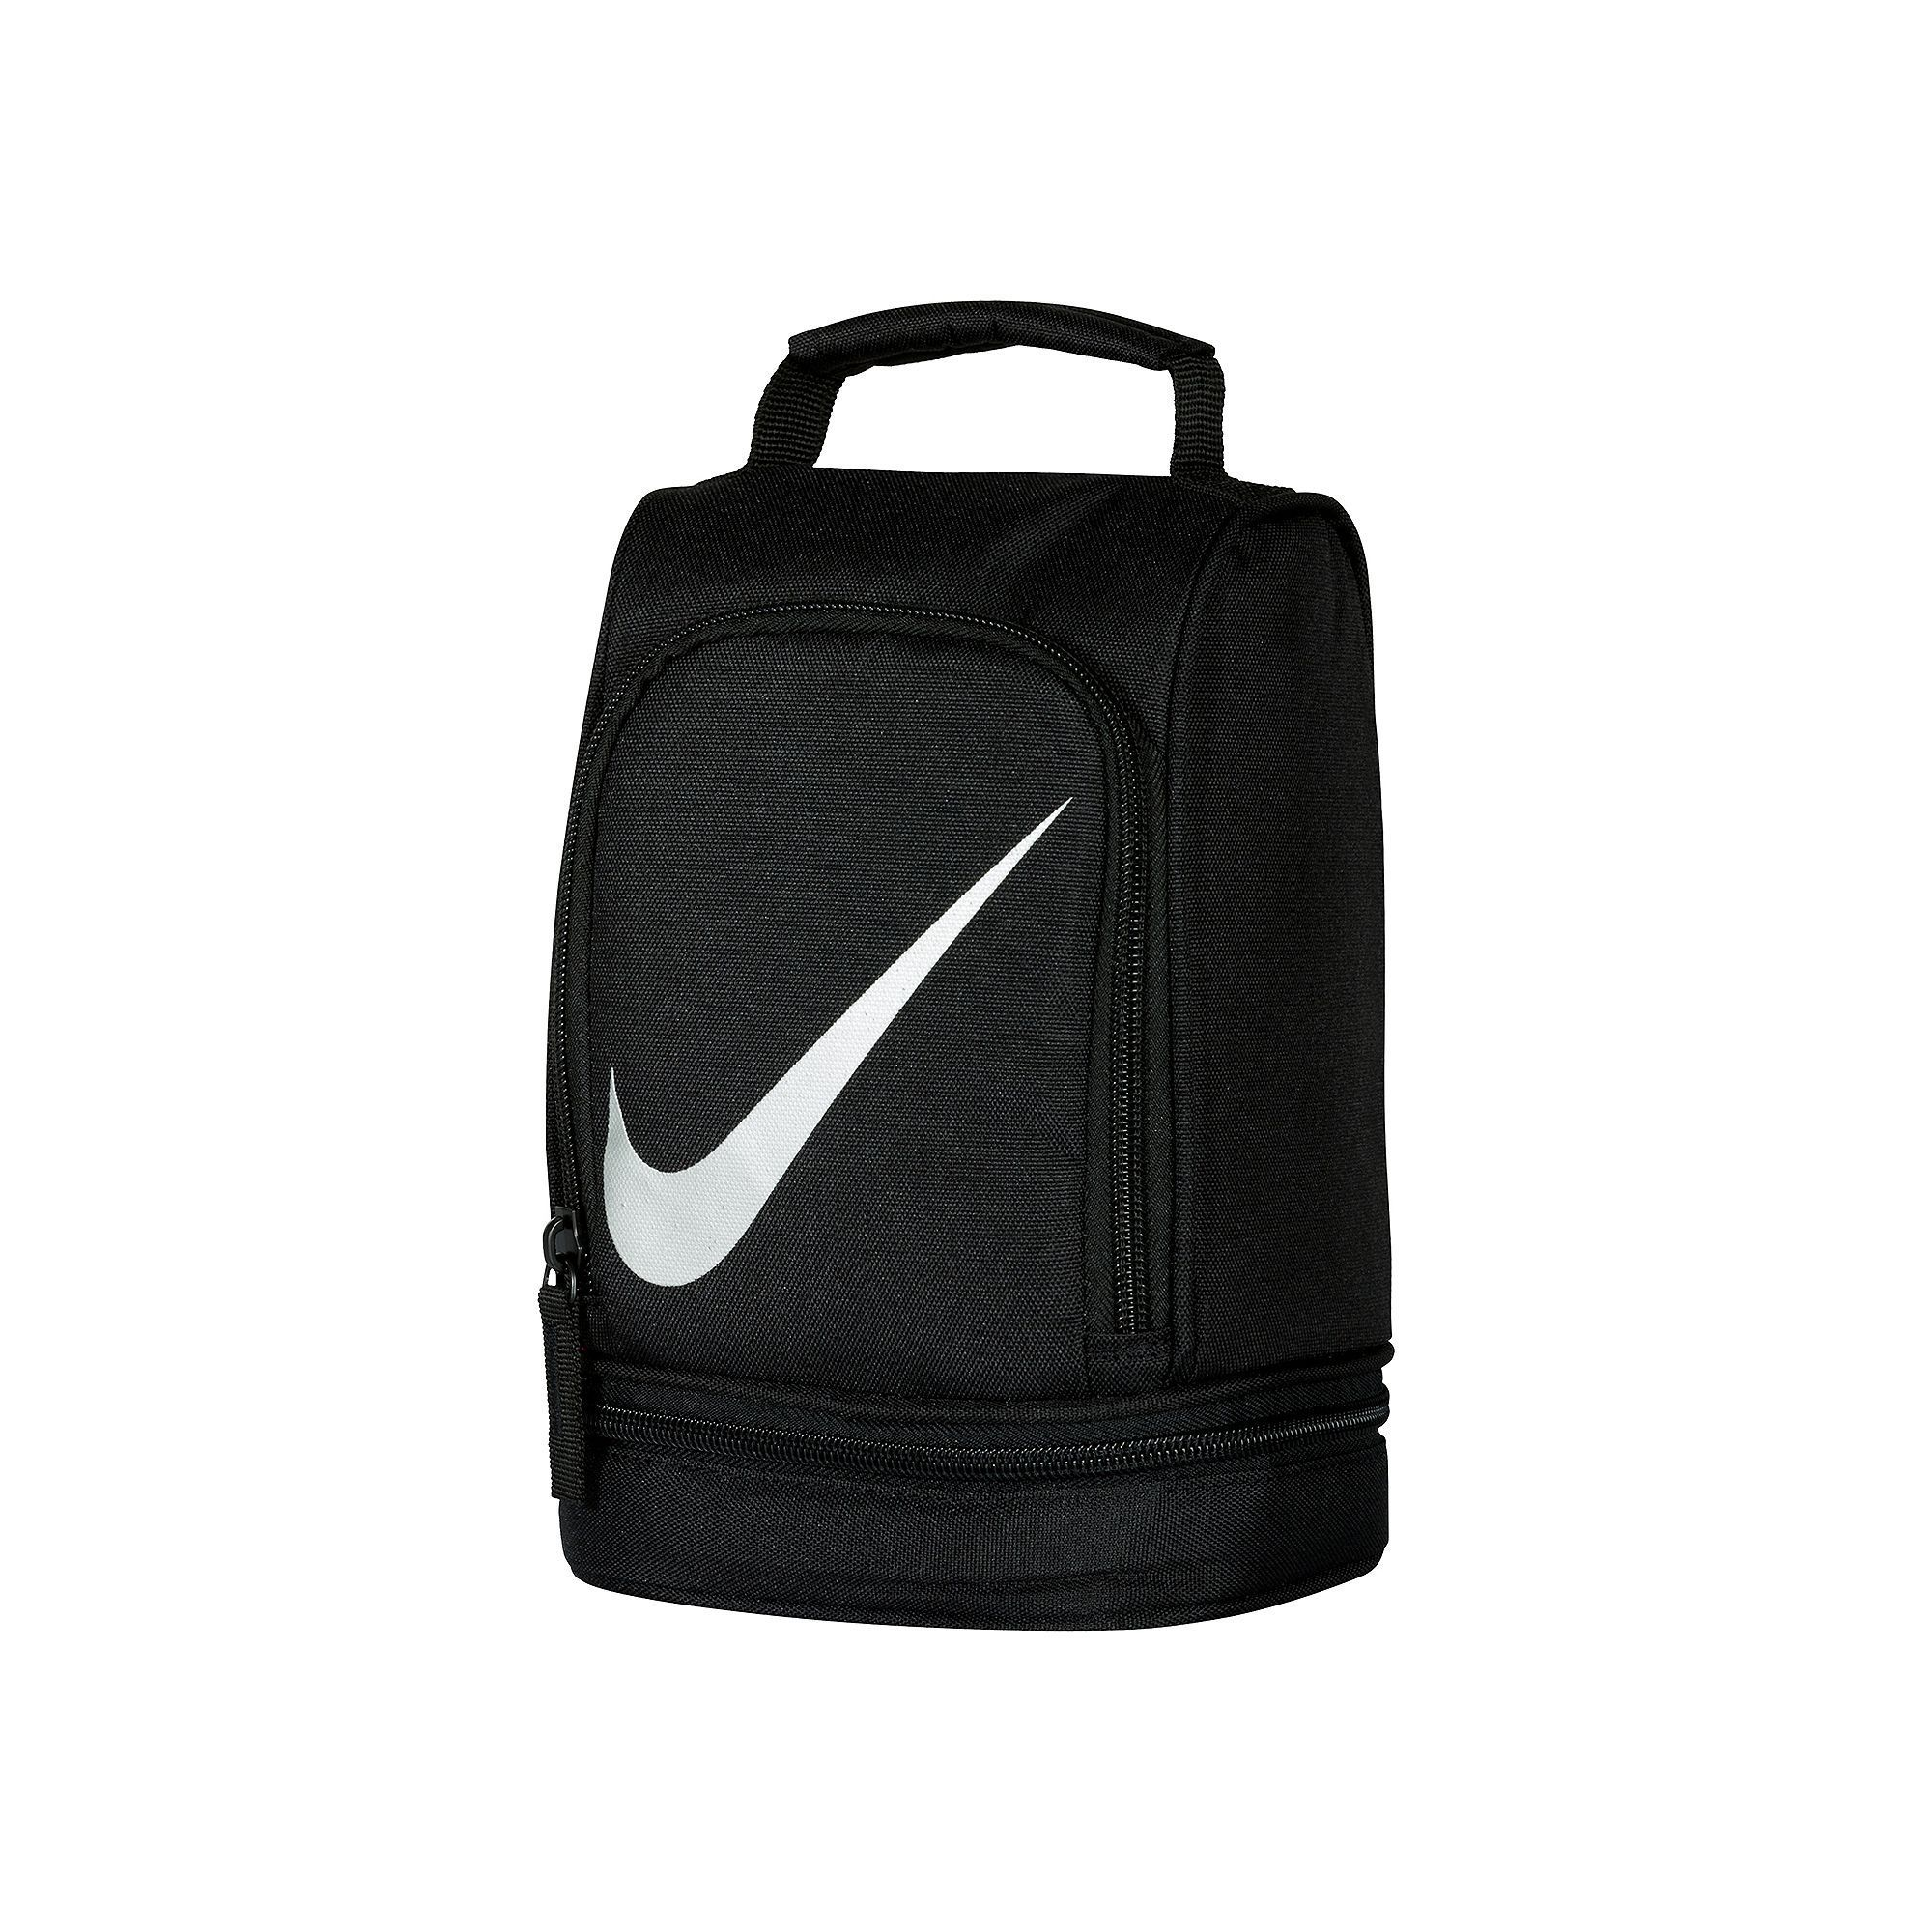 3927b57998db93 Nike Dome Lunch Bag in 2019 | Products | Kids lunch bags, Best lunch ...